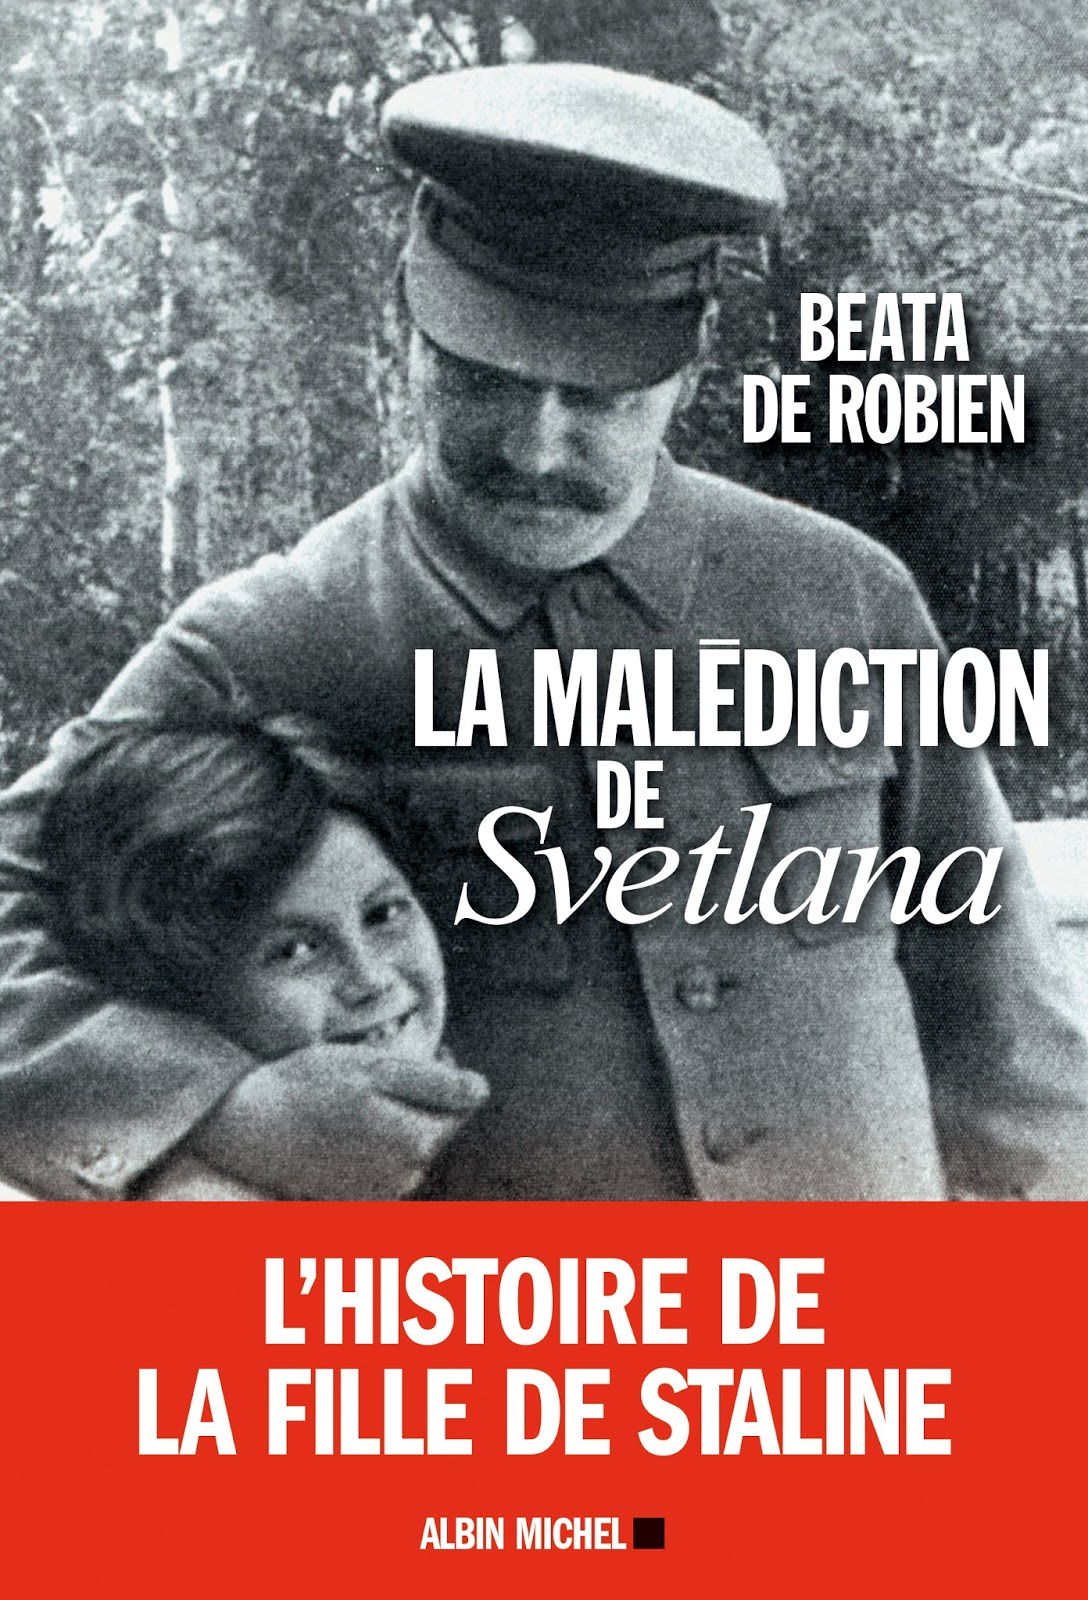 La malédiction de Svetlana